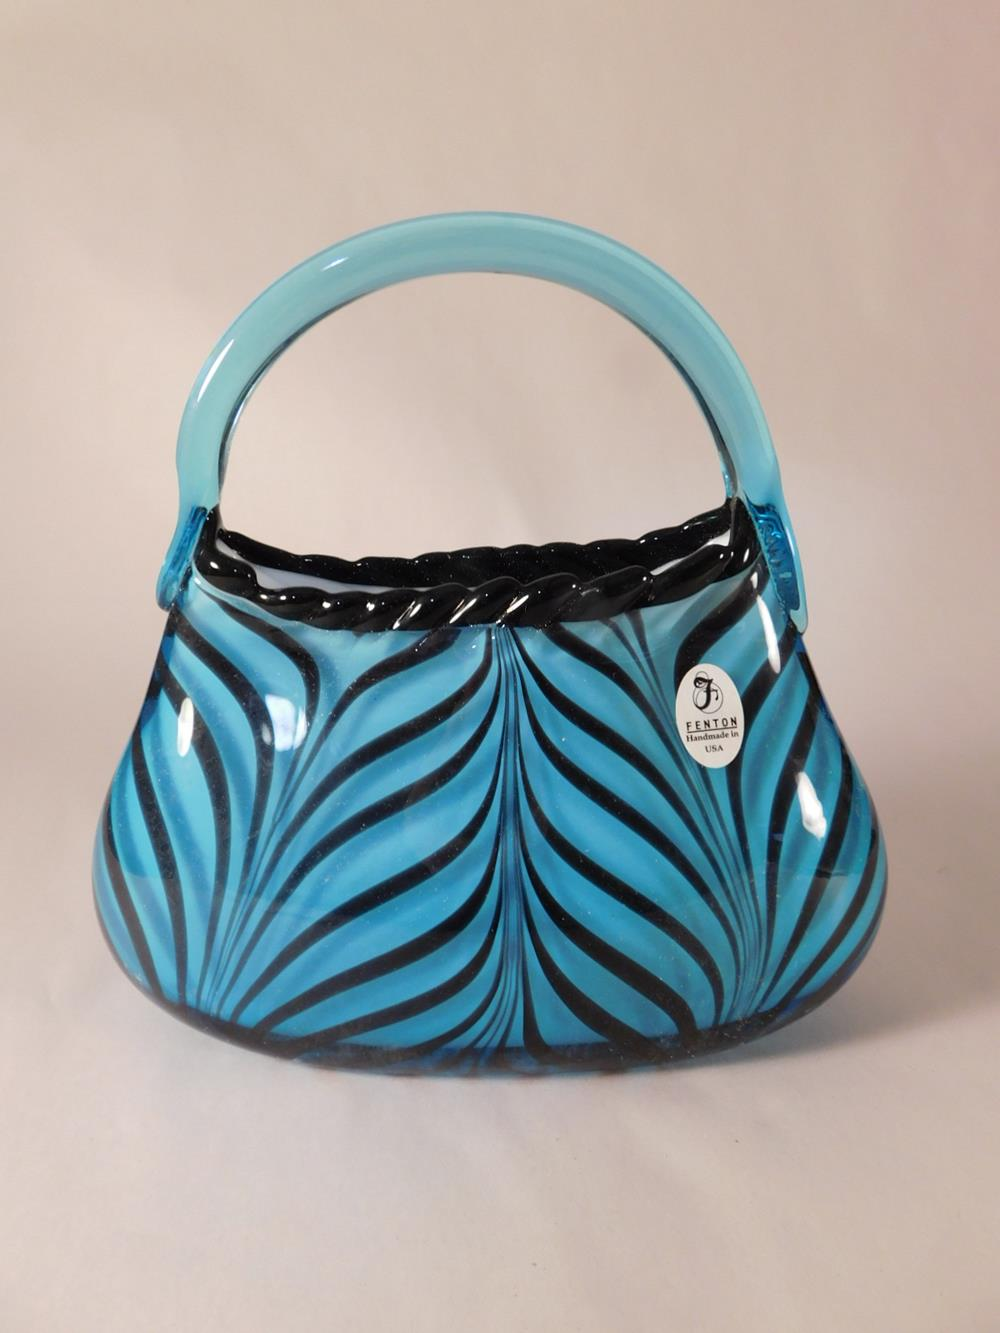 Fenton Art Glass USA Hand Painted and Signed DAVID FETTY CONNOISSEUR COLLECTION PURSE See Photo